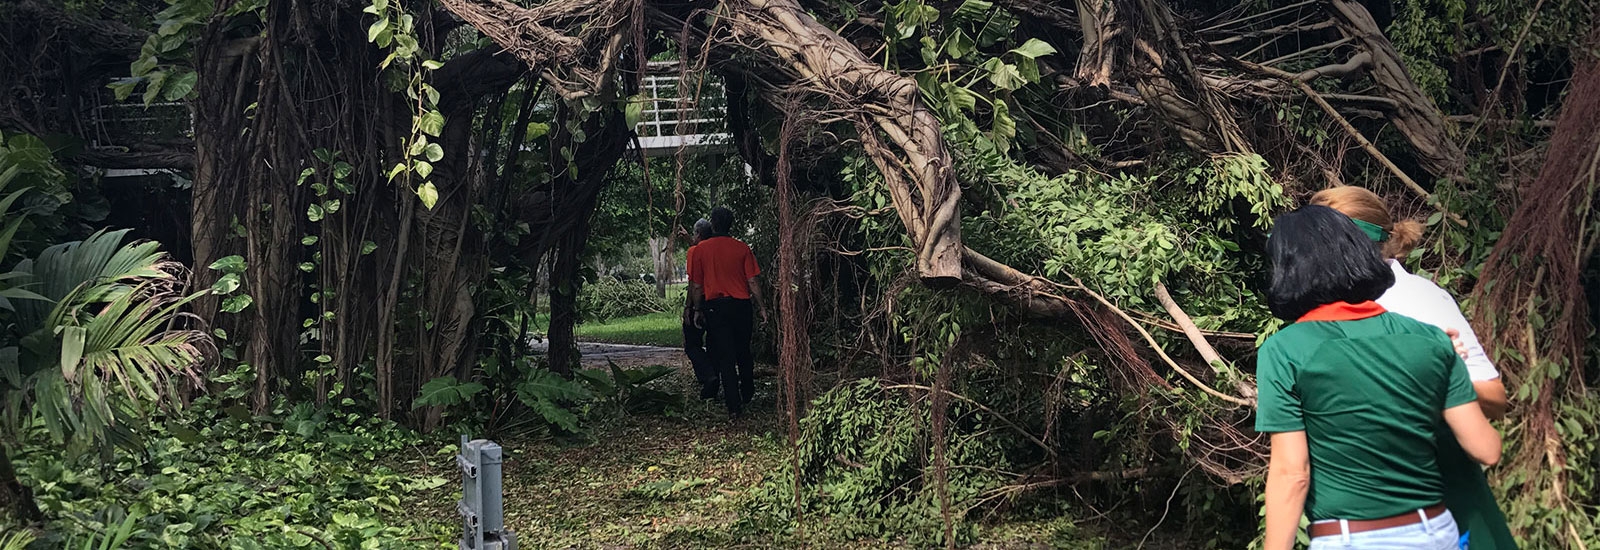 Assessing Damage on Campus After Hurricane Irma